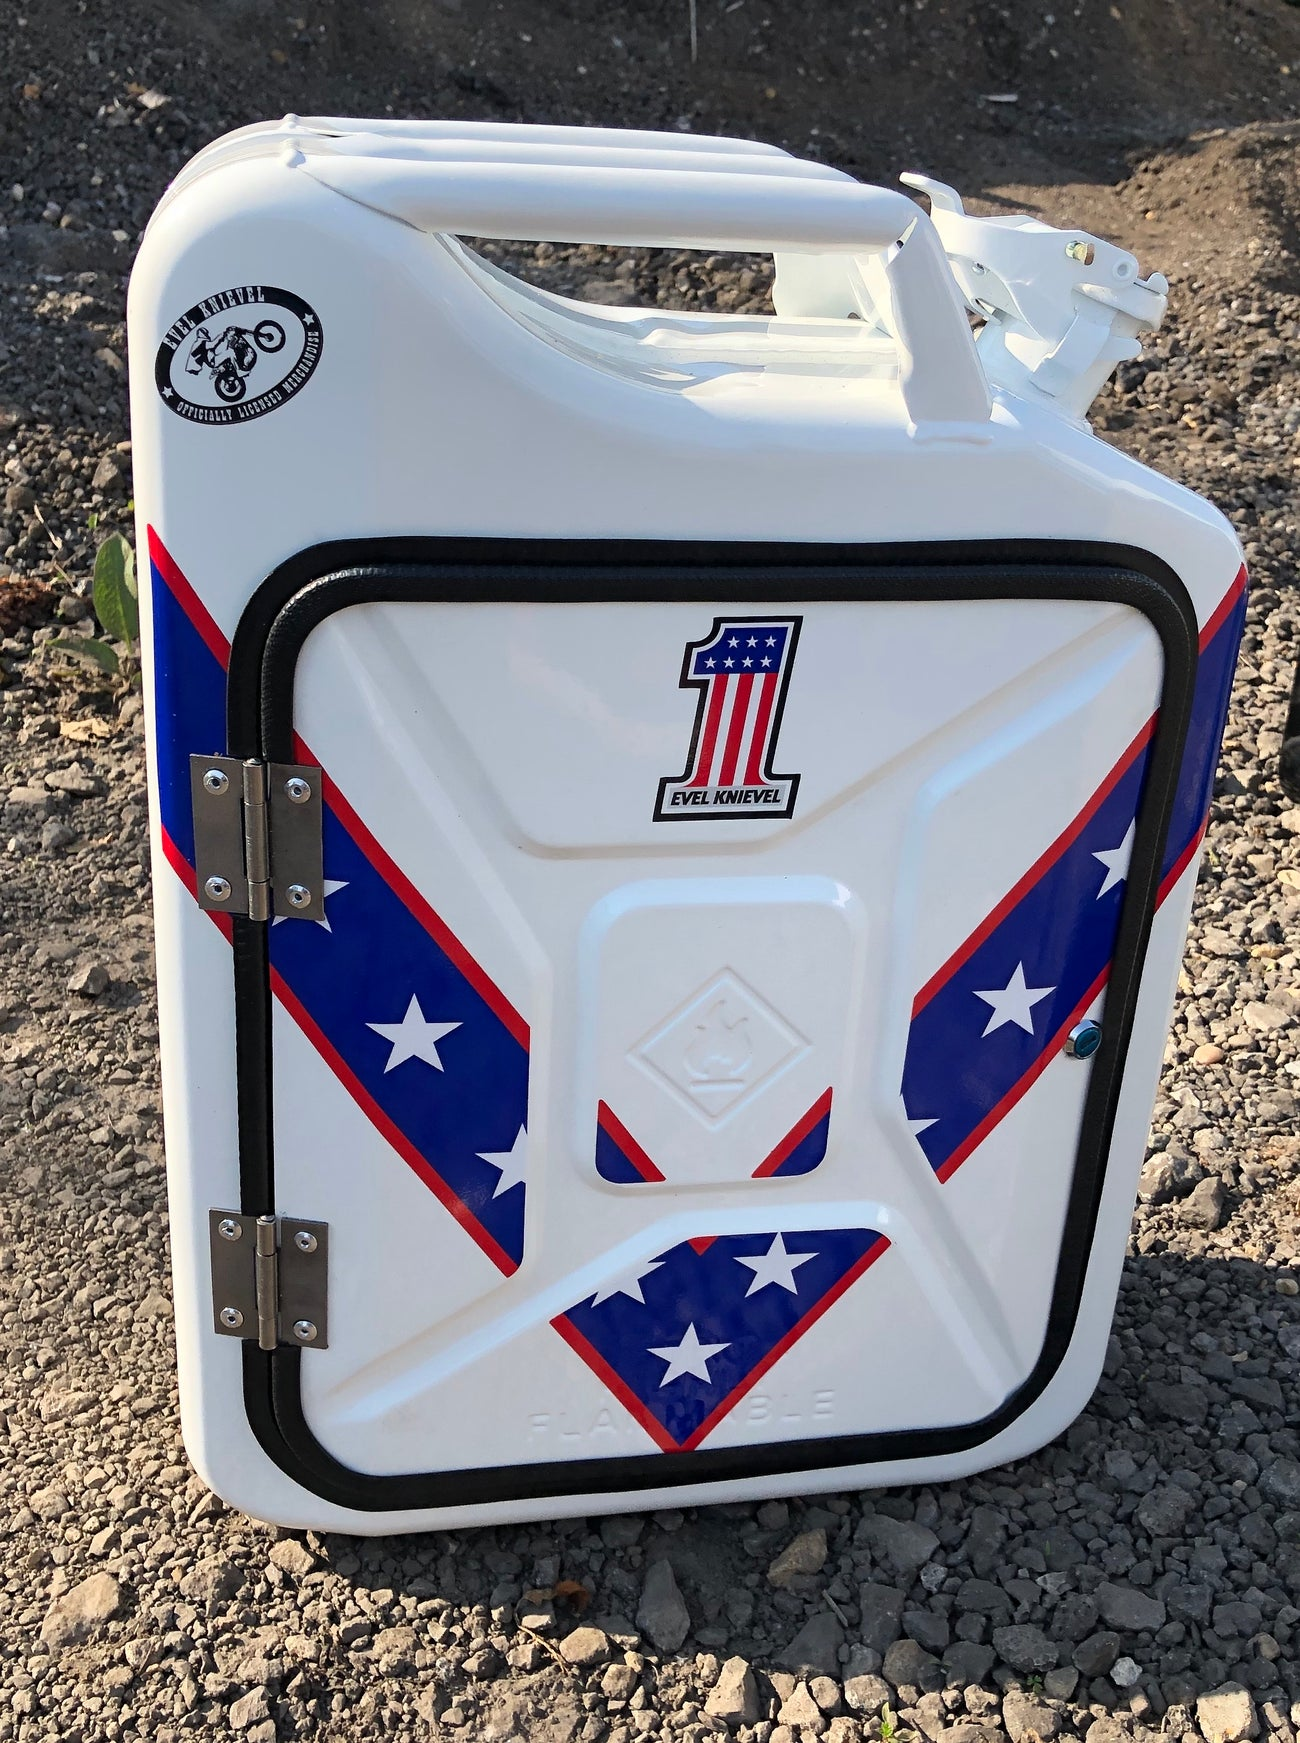 White Evel Knievel Jerry can mini bar (licensed)